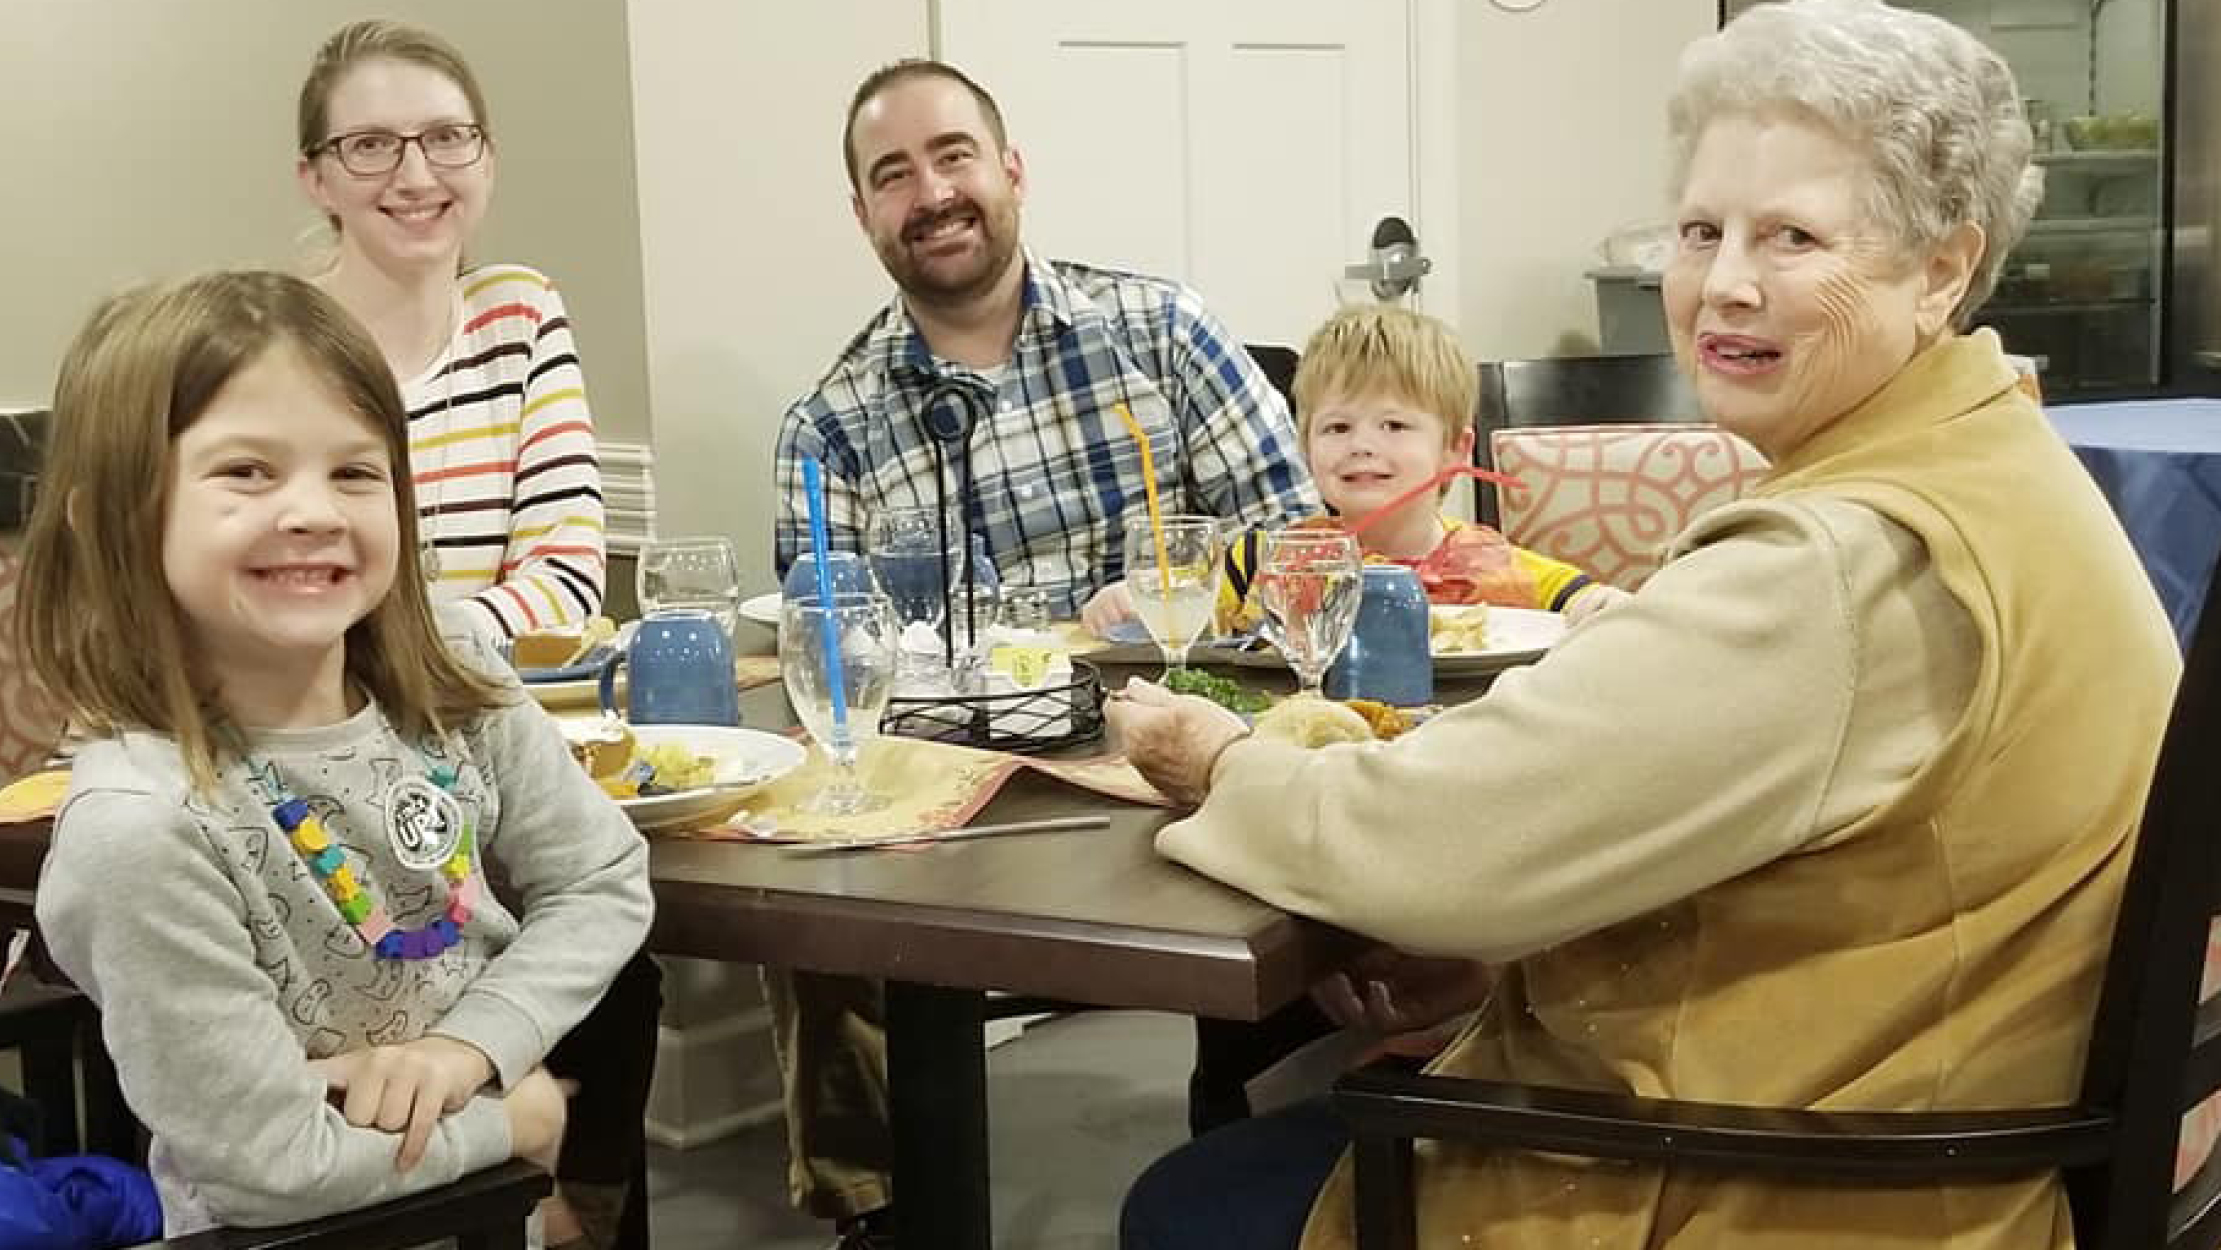 On Thursday, November 8, Cross Creek At Lee's Summit Assisted Living | Memory Care Residents, Staff And Family Members Gathered Together To Celebrate The Community's First Thanksgiving.